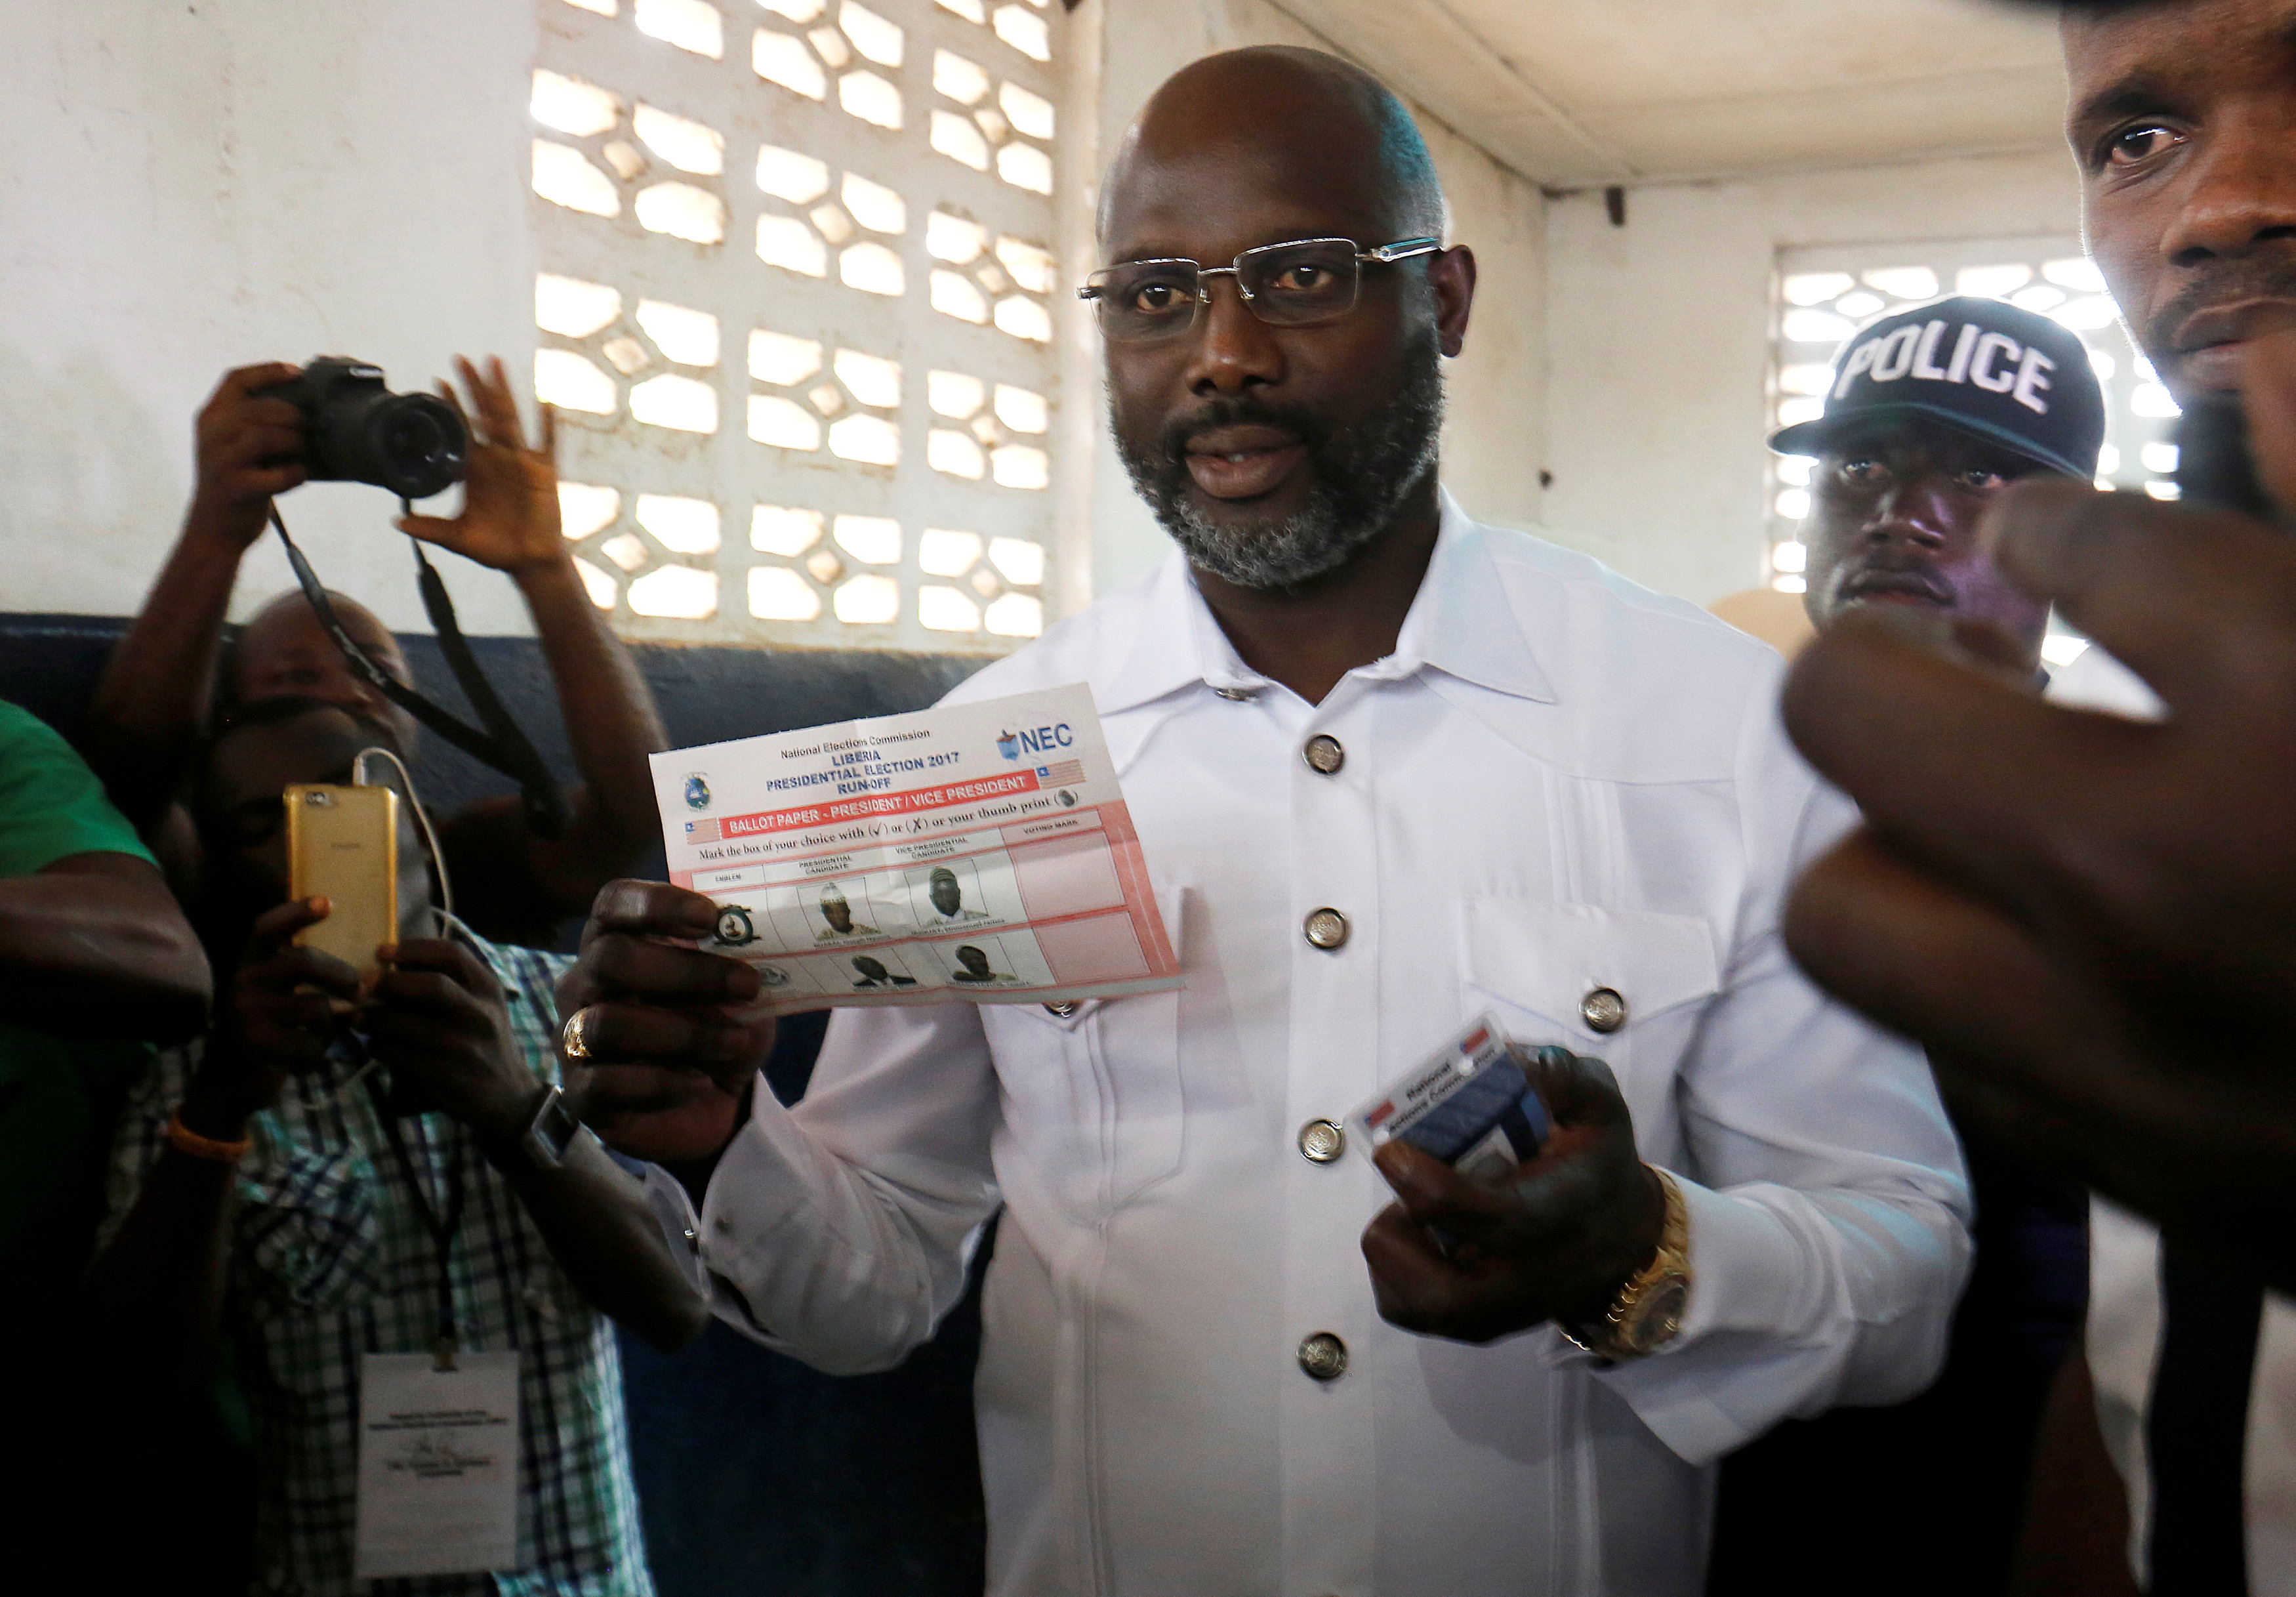 George Weah, former soccer player and presidential candidate of Congress for Democratic Change (CDC), prepares his ballot during presidential elections at a polling station in Monrovia, Liberia, December 26, 2017.